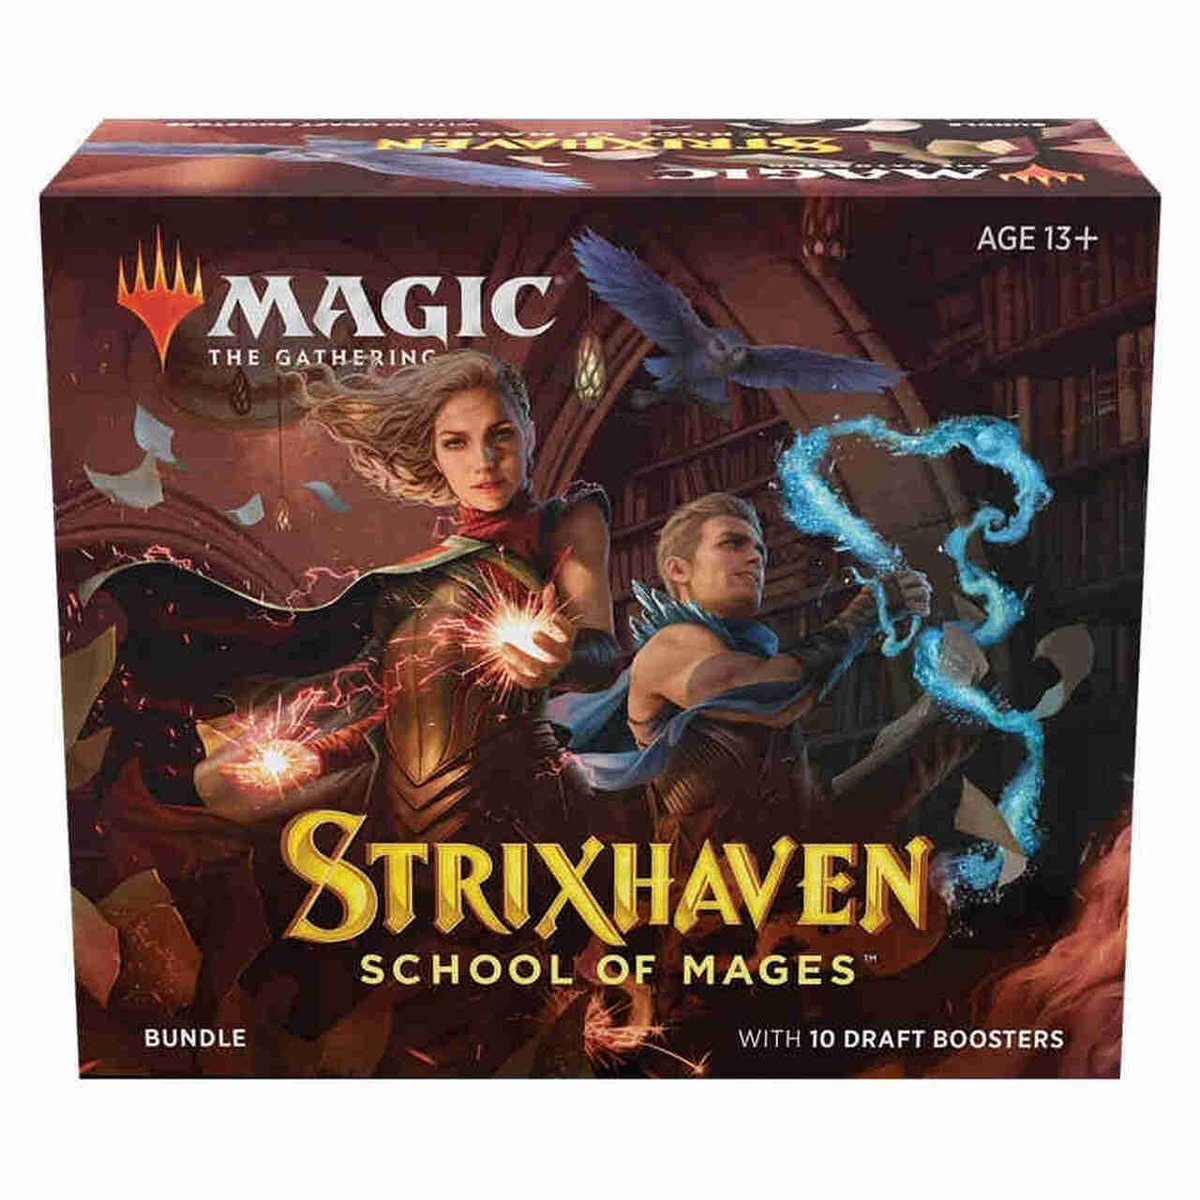 test Twitter Media - A little editing mishap on #mtgaction4news so the giveaway didn't make the cut. BUT we are excited to announce @RMcKenzi3 won the April giveaway of a #StrixhavenYearBook bundle from @LevelOneShop and pair of @CMDTower sleeves/playmat  Thanks for being a supporter! https://t.co/YGwbO5vcZE